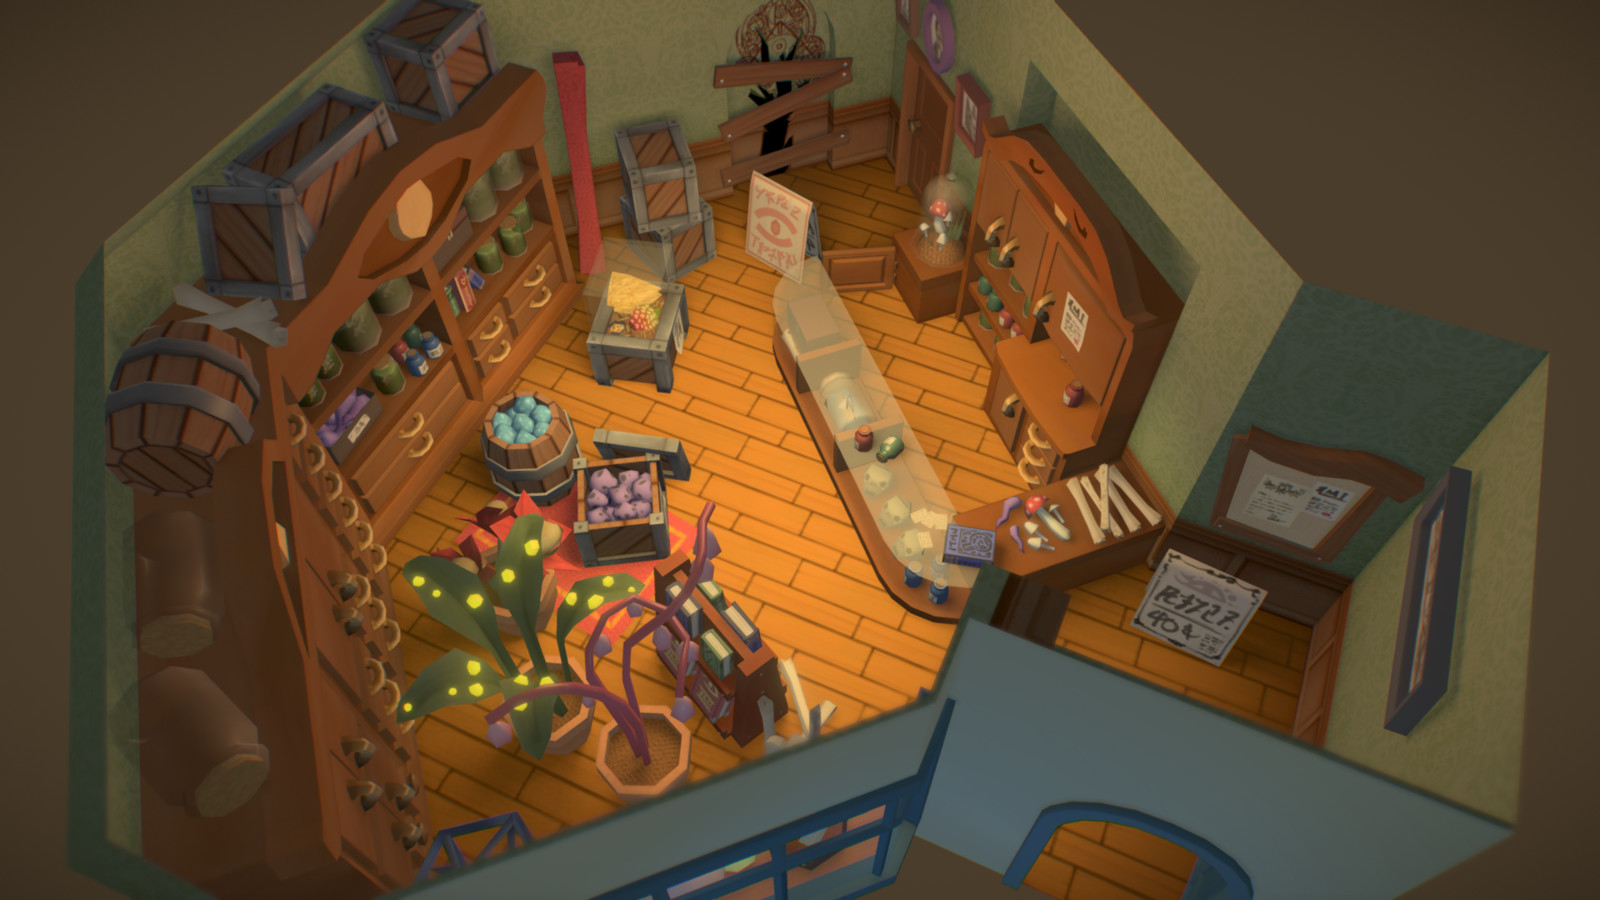 New lighting model is easier on the eyes, but the shop now feels more cozy instead of evil.